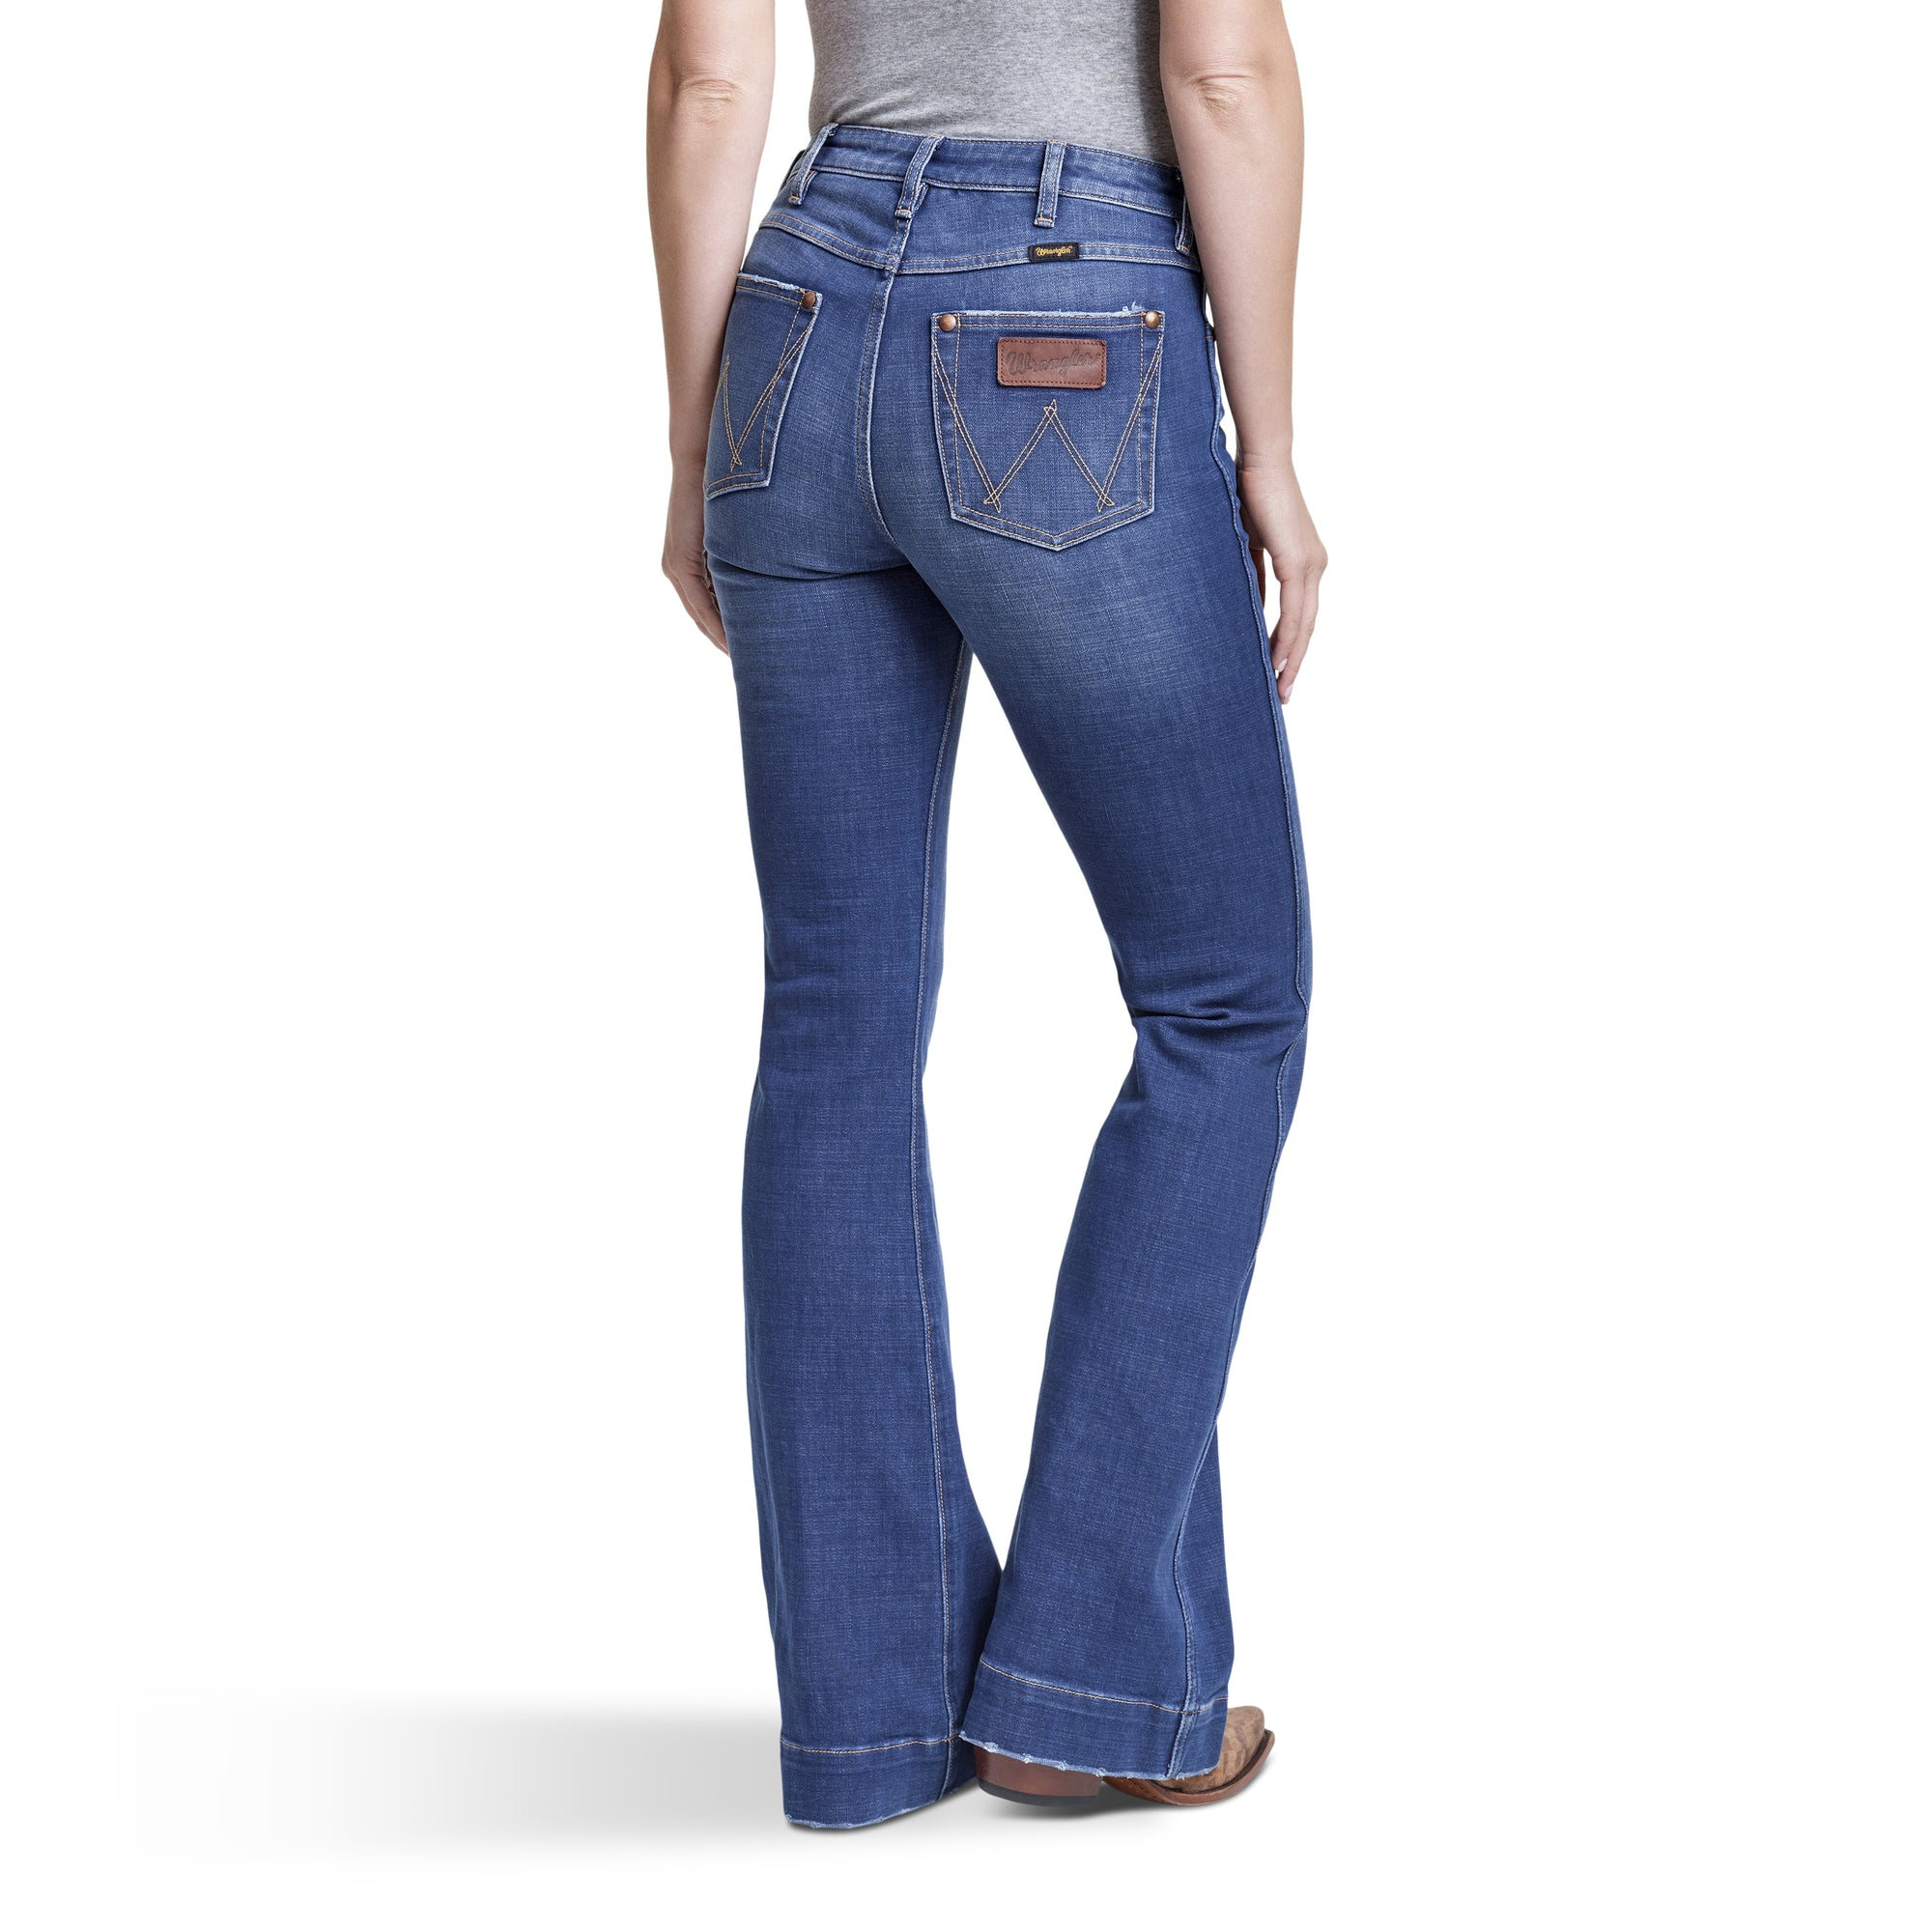 Wrangler Retro Trouser High Rise Stretch Jean